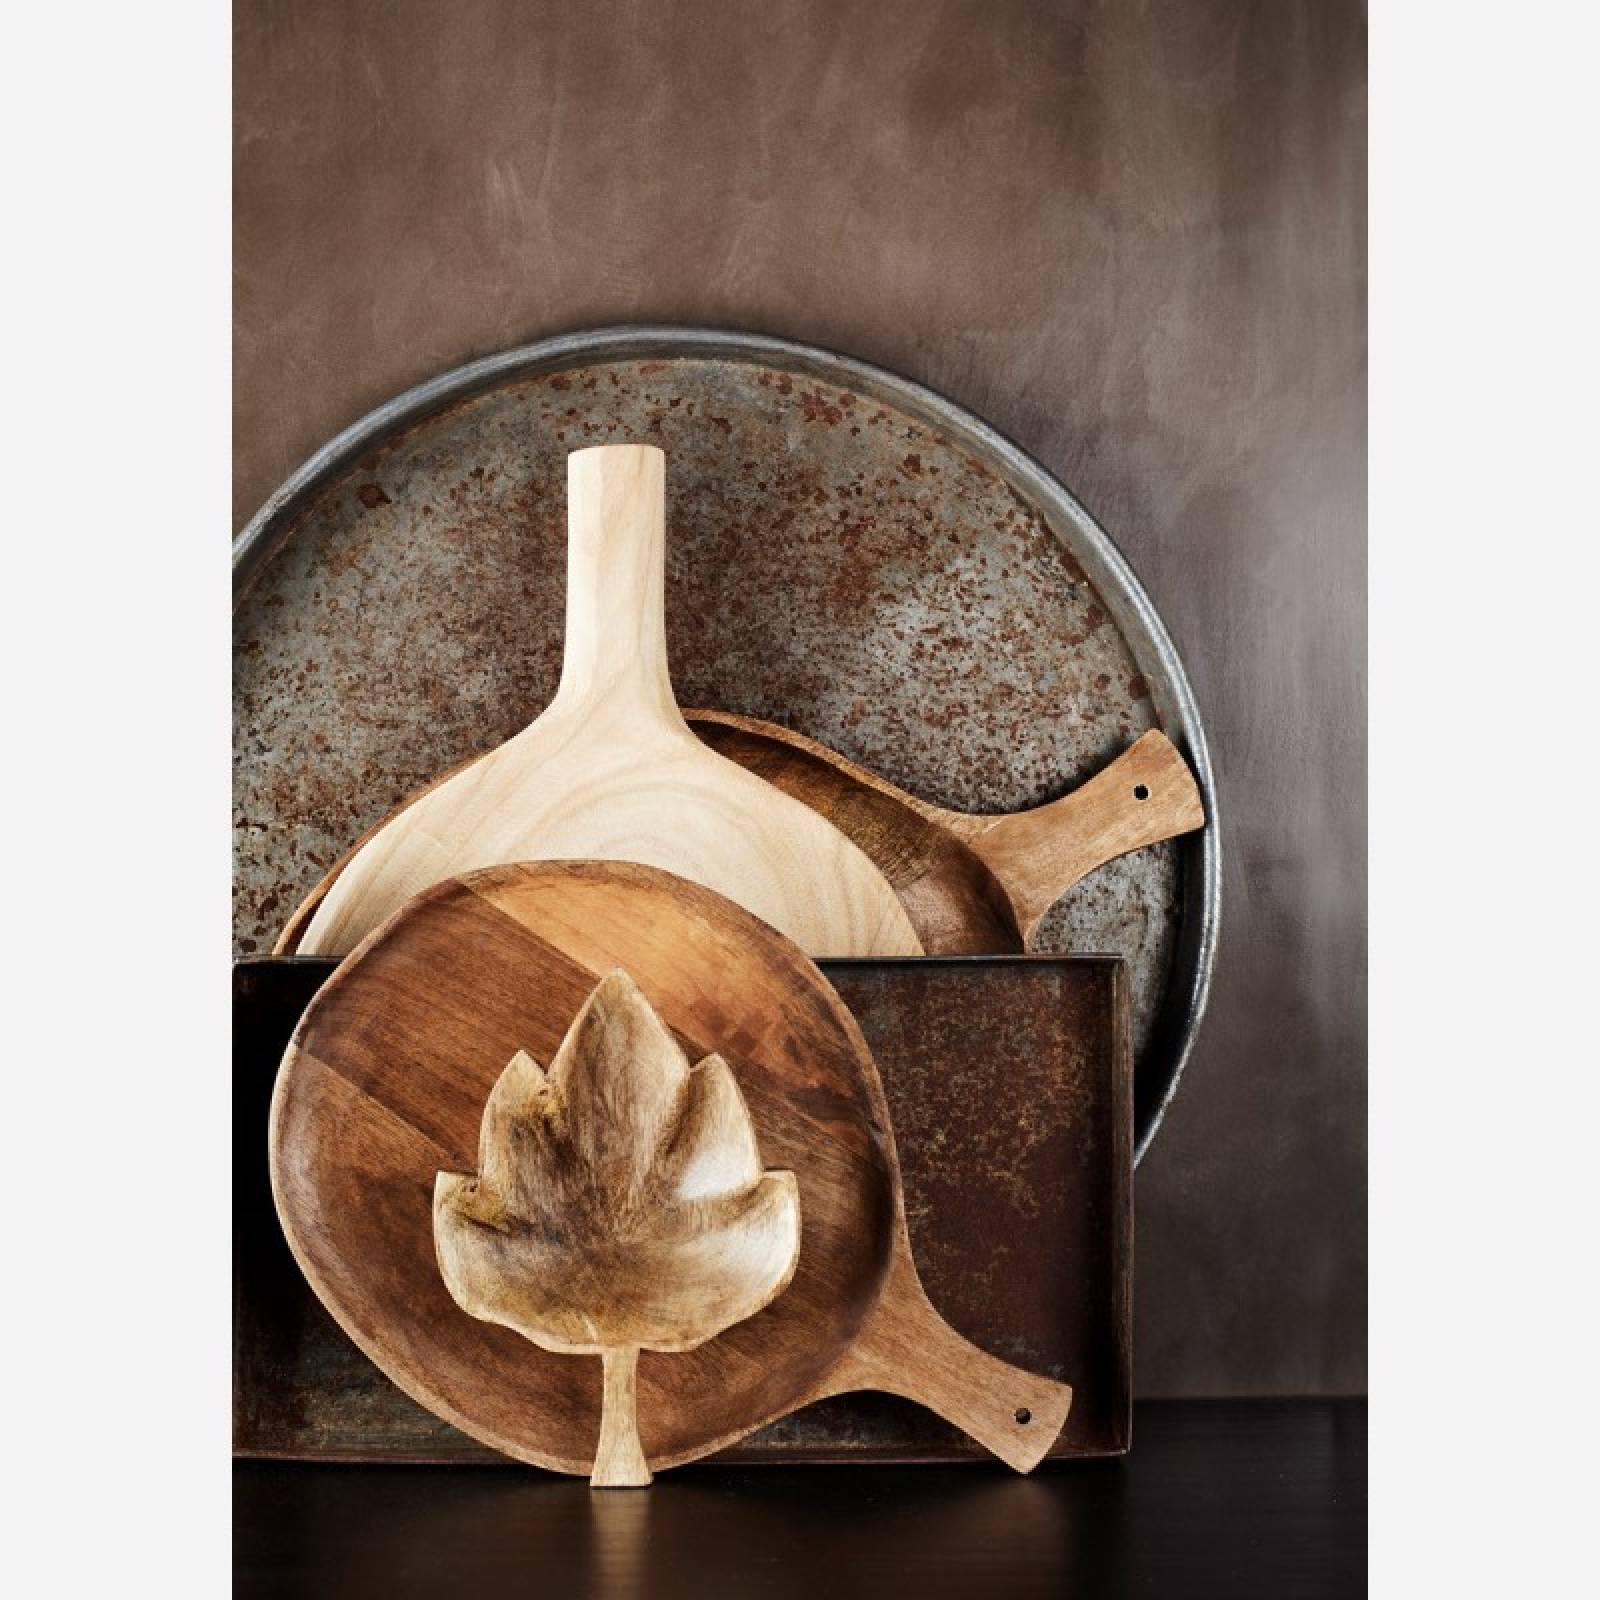 Large Round Wooden Serving Dish With Handle thumbnails